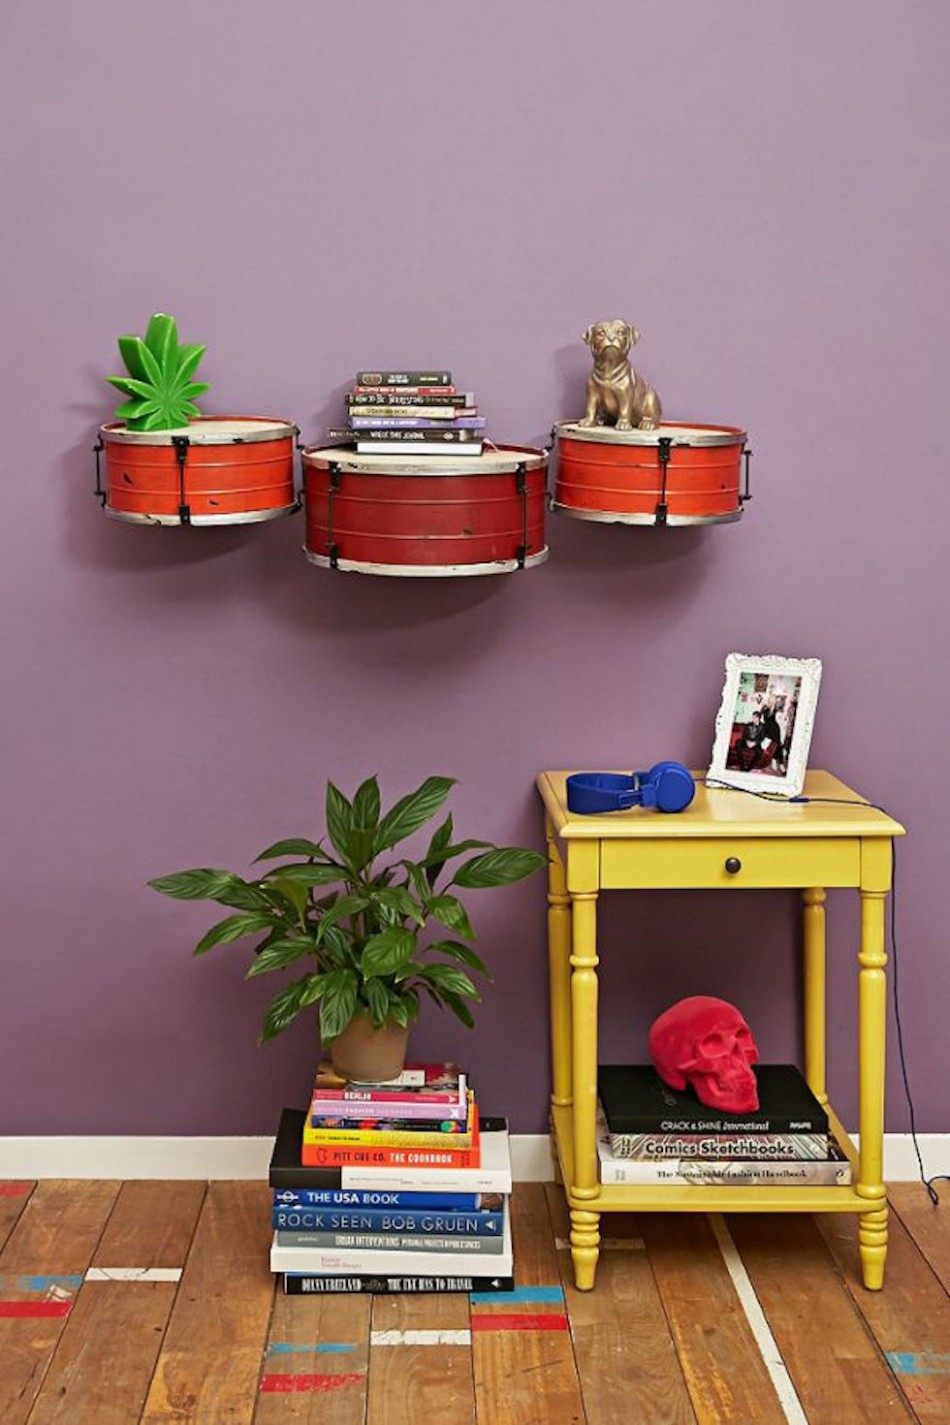 Interior design inspired by Music Interior design inspired by Music Drum shelves e1441191025561